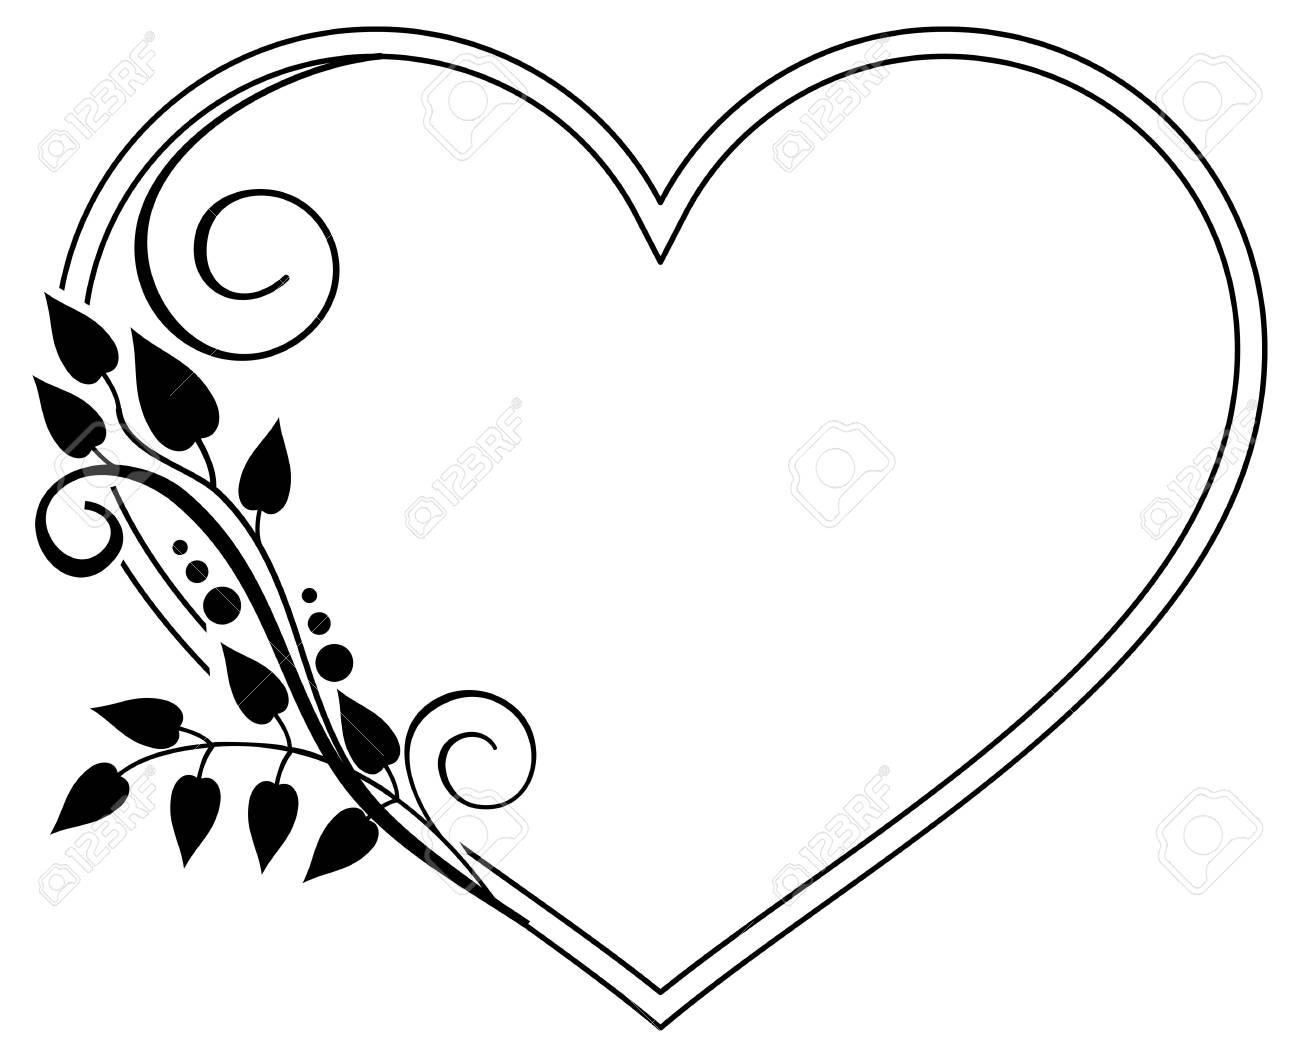 hight resolution of heart shaped black and white frame with floral silhouettes copy space vector clip